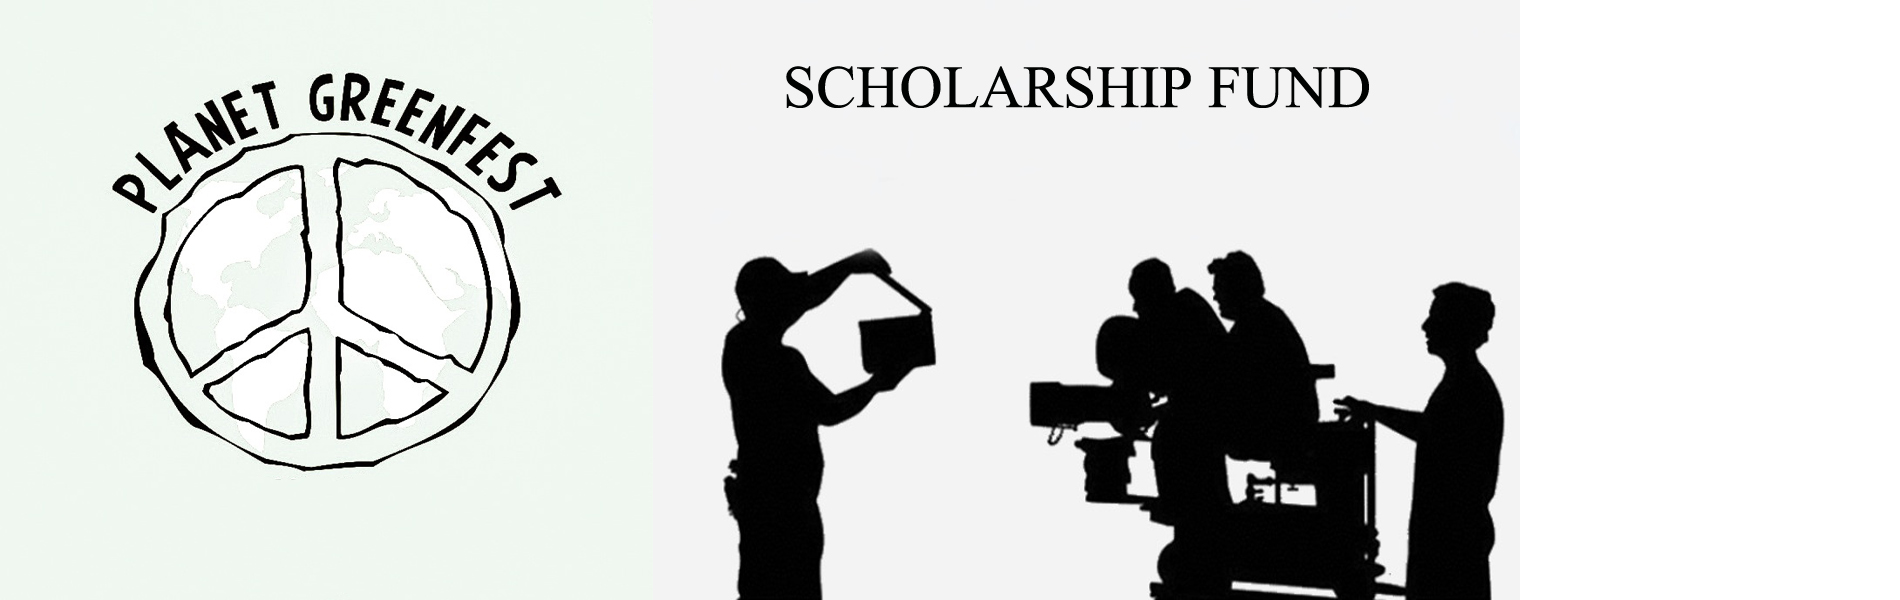 Planet Greenfest Scholarship Fund